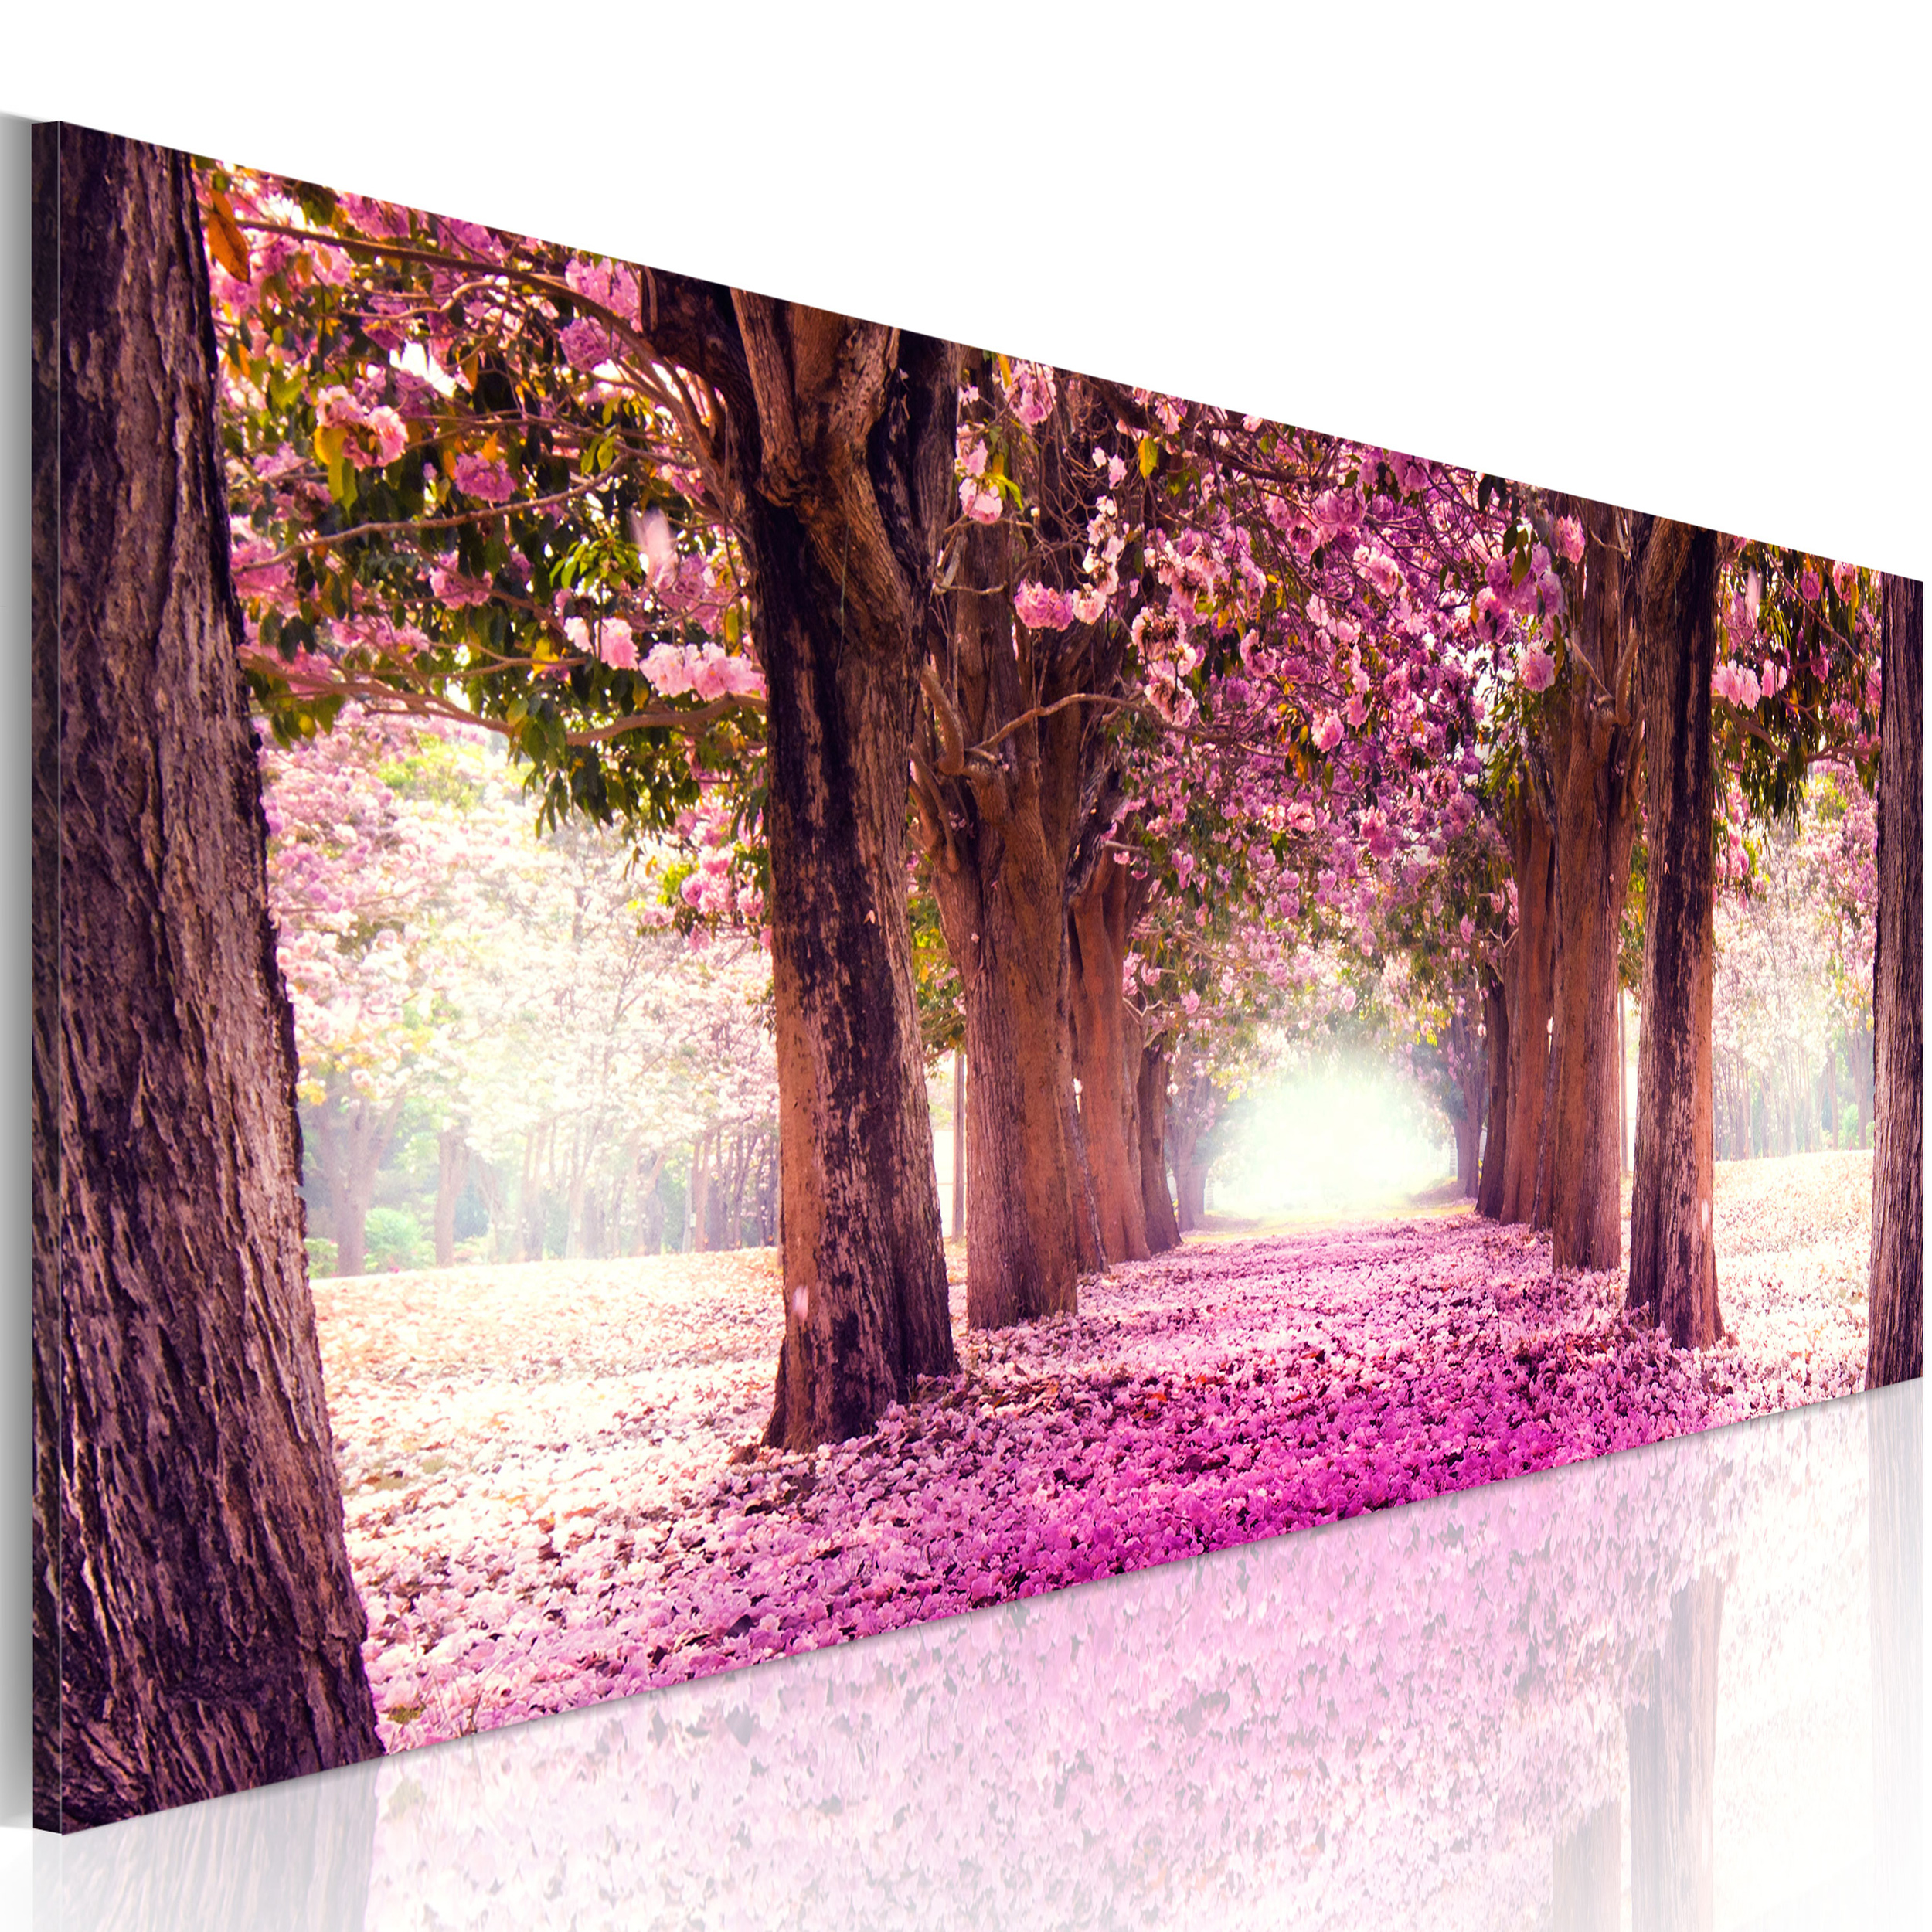 bilder leinwand bild strand meer wald blumen panorama kunstdruck gro e auswahl ebay. Black Bedroom Furniture Sets. Home Design Ideas